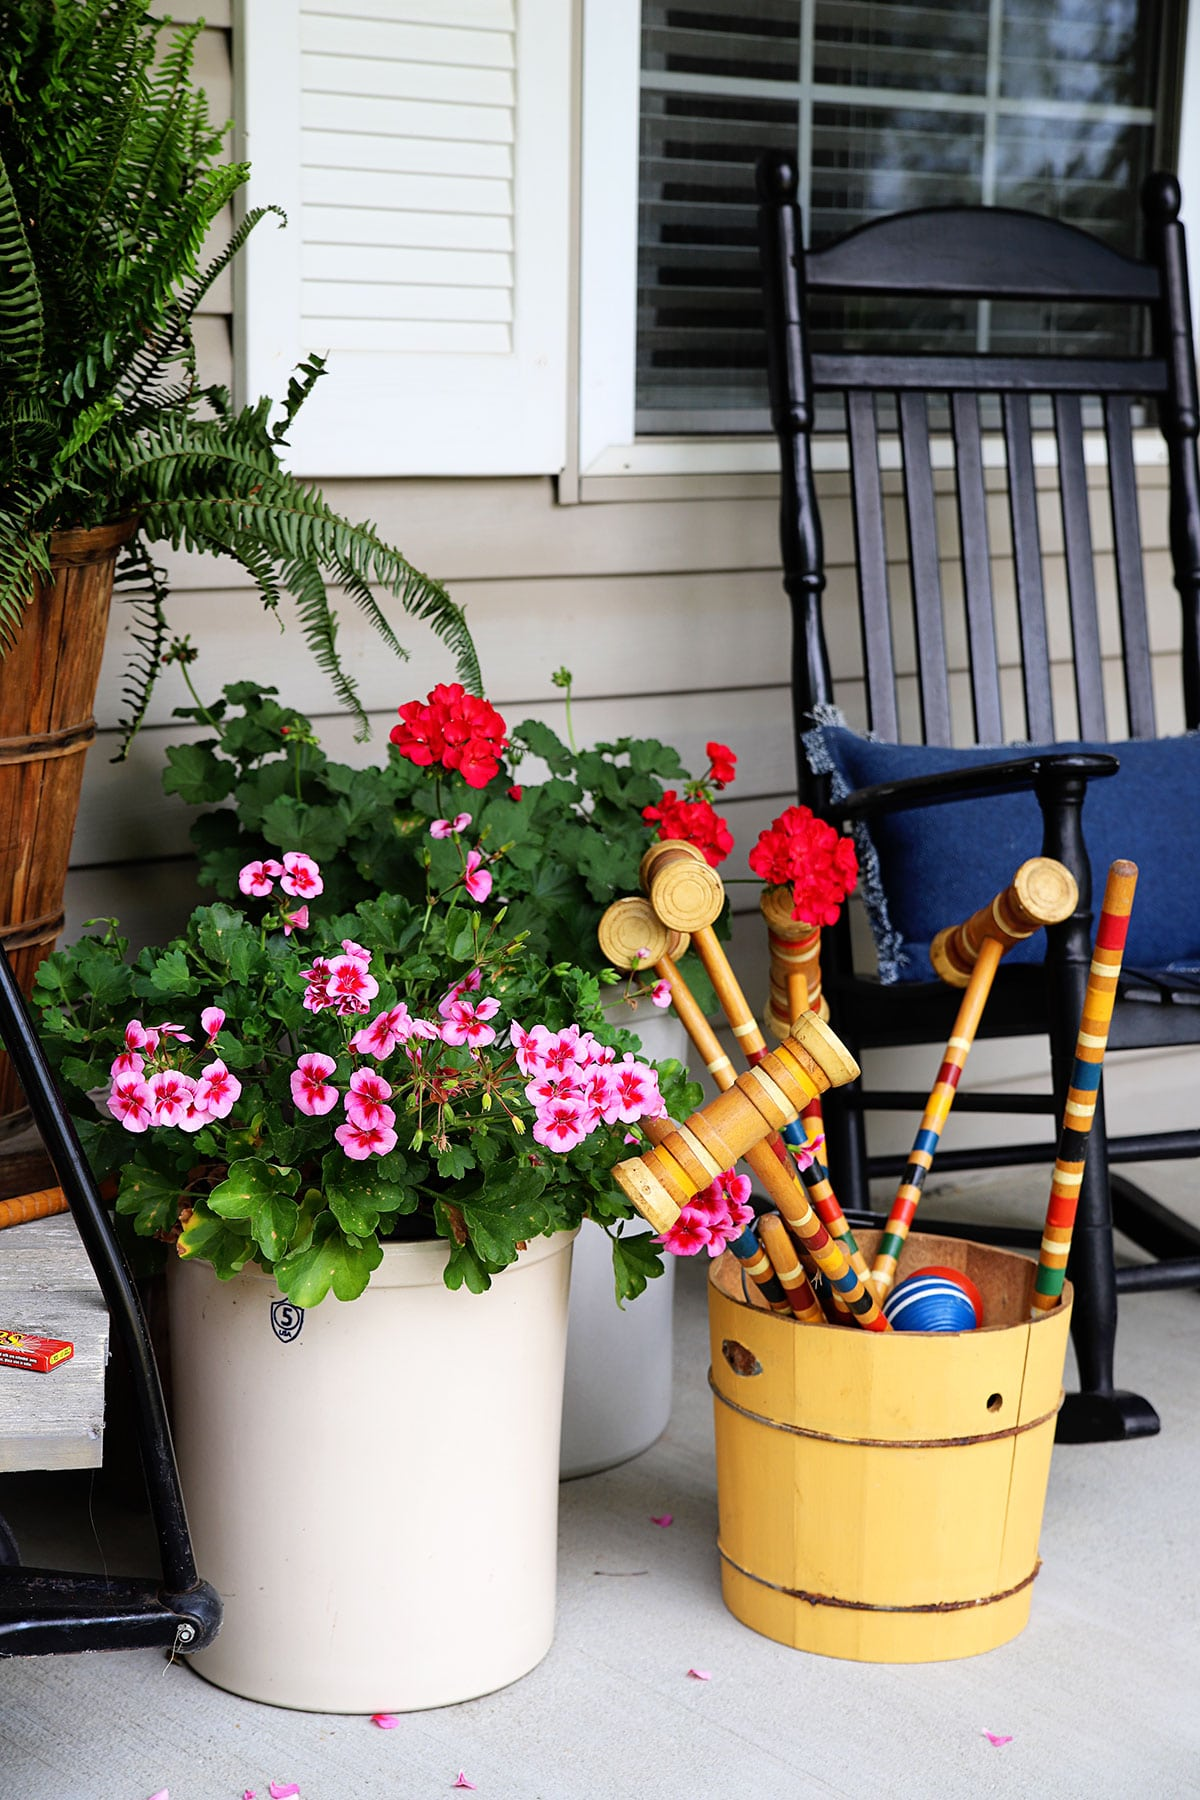 Geraniums planted in crocks on the front porch. Croquet set in a yellow ice cream churn to the side.